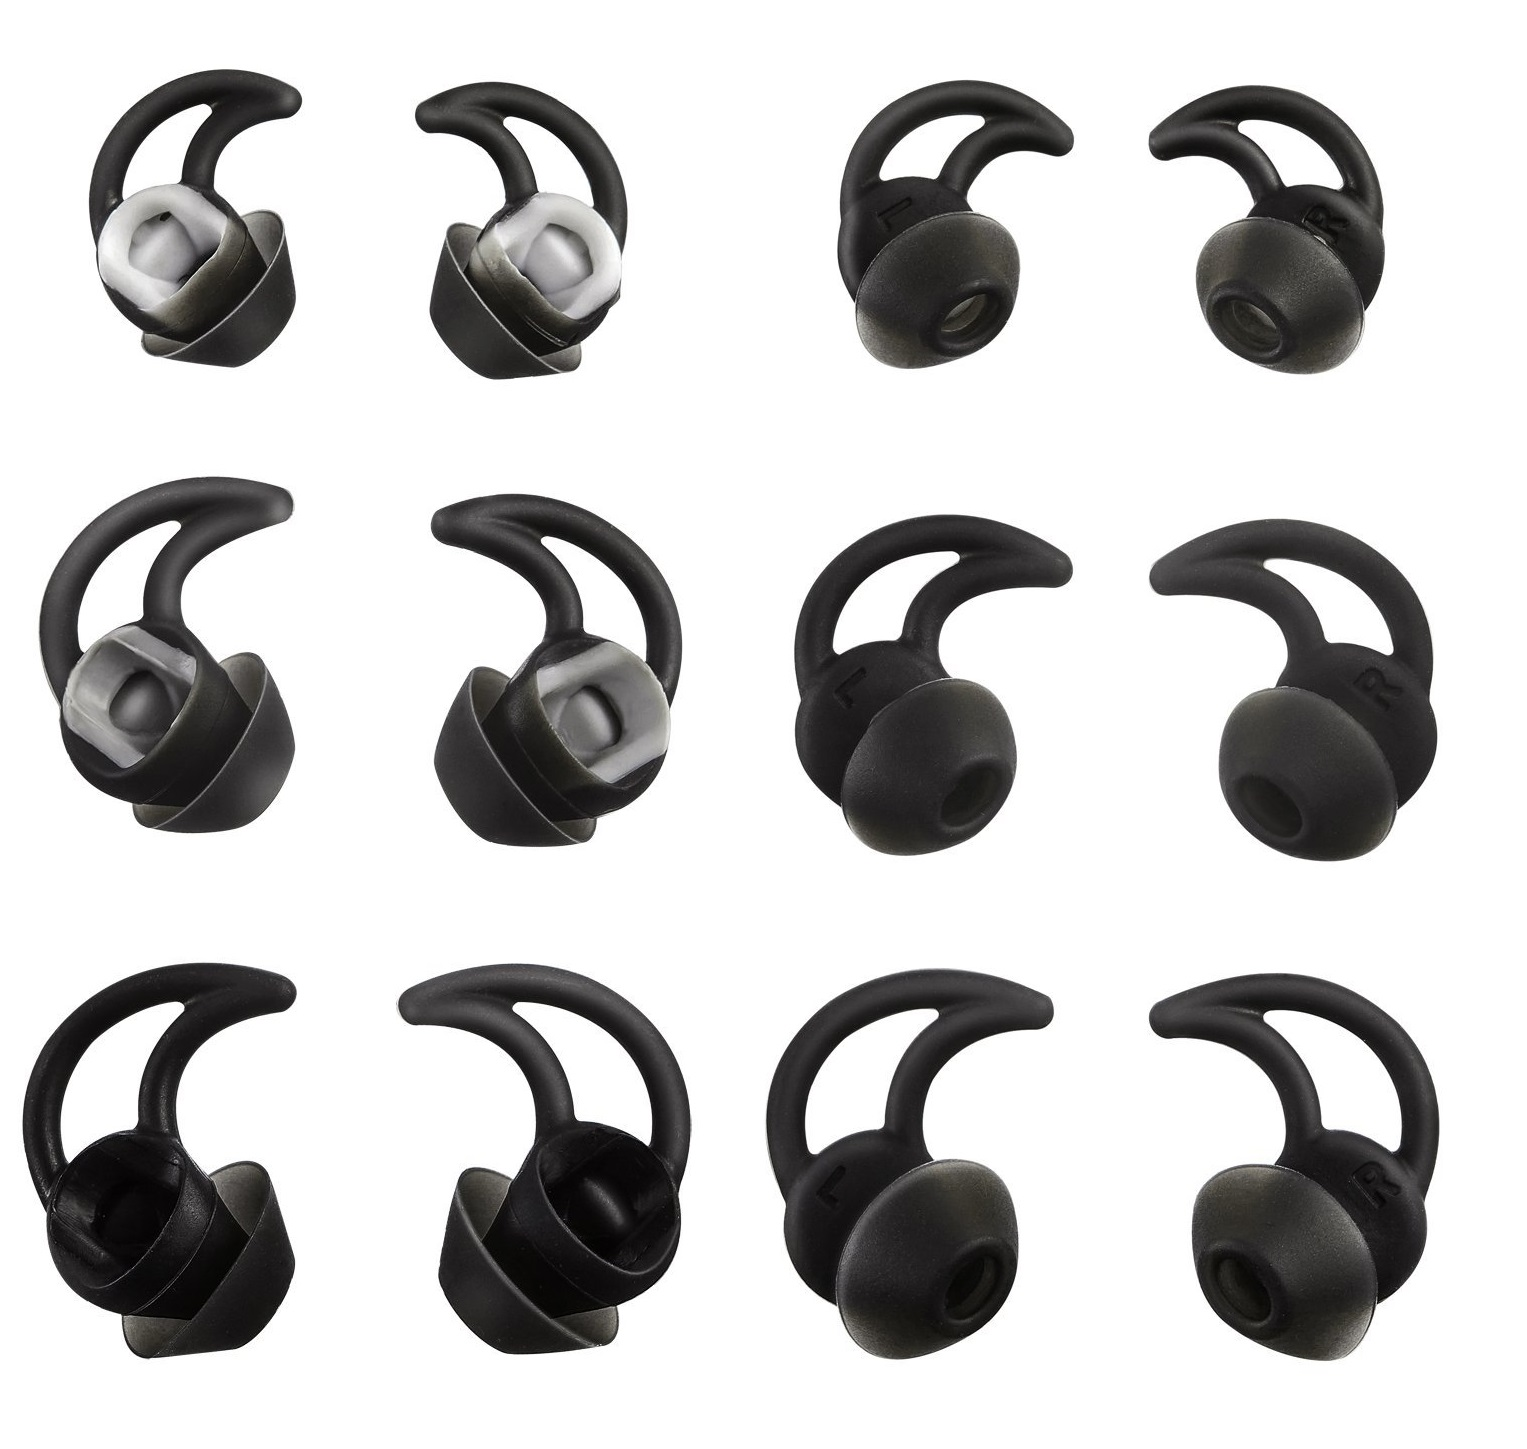 Replacement Ear Gel Tips For Bose IE2 In-Ear Noise Canceling Headphones 1 Pair